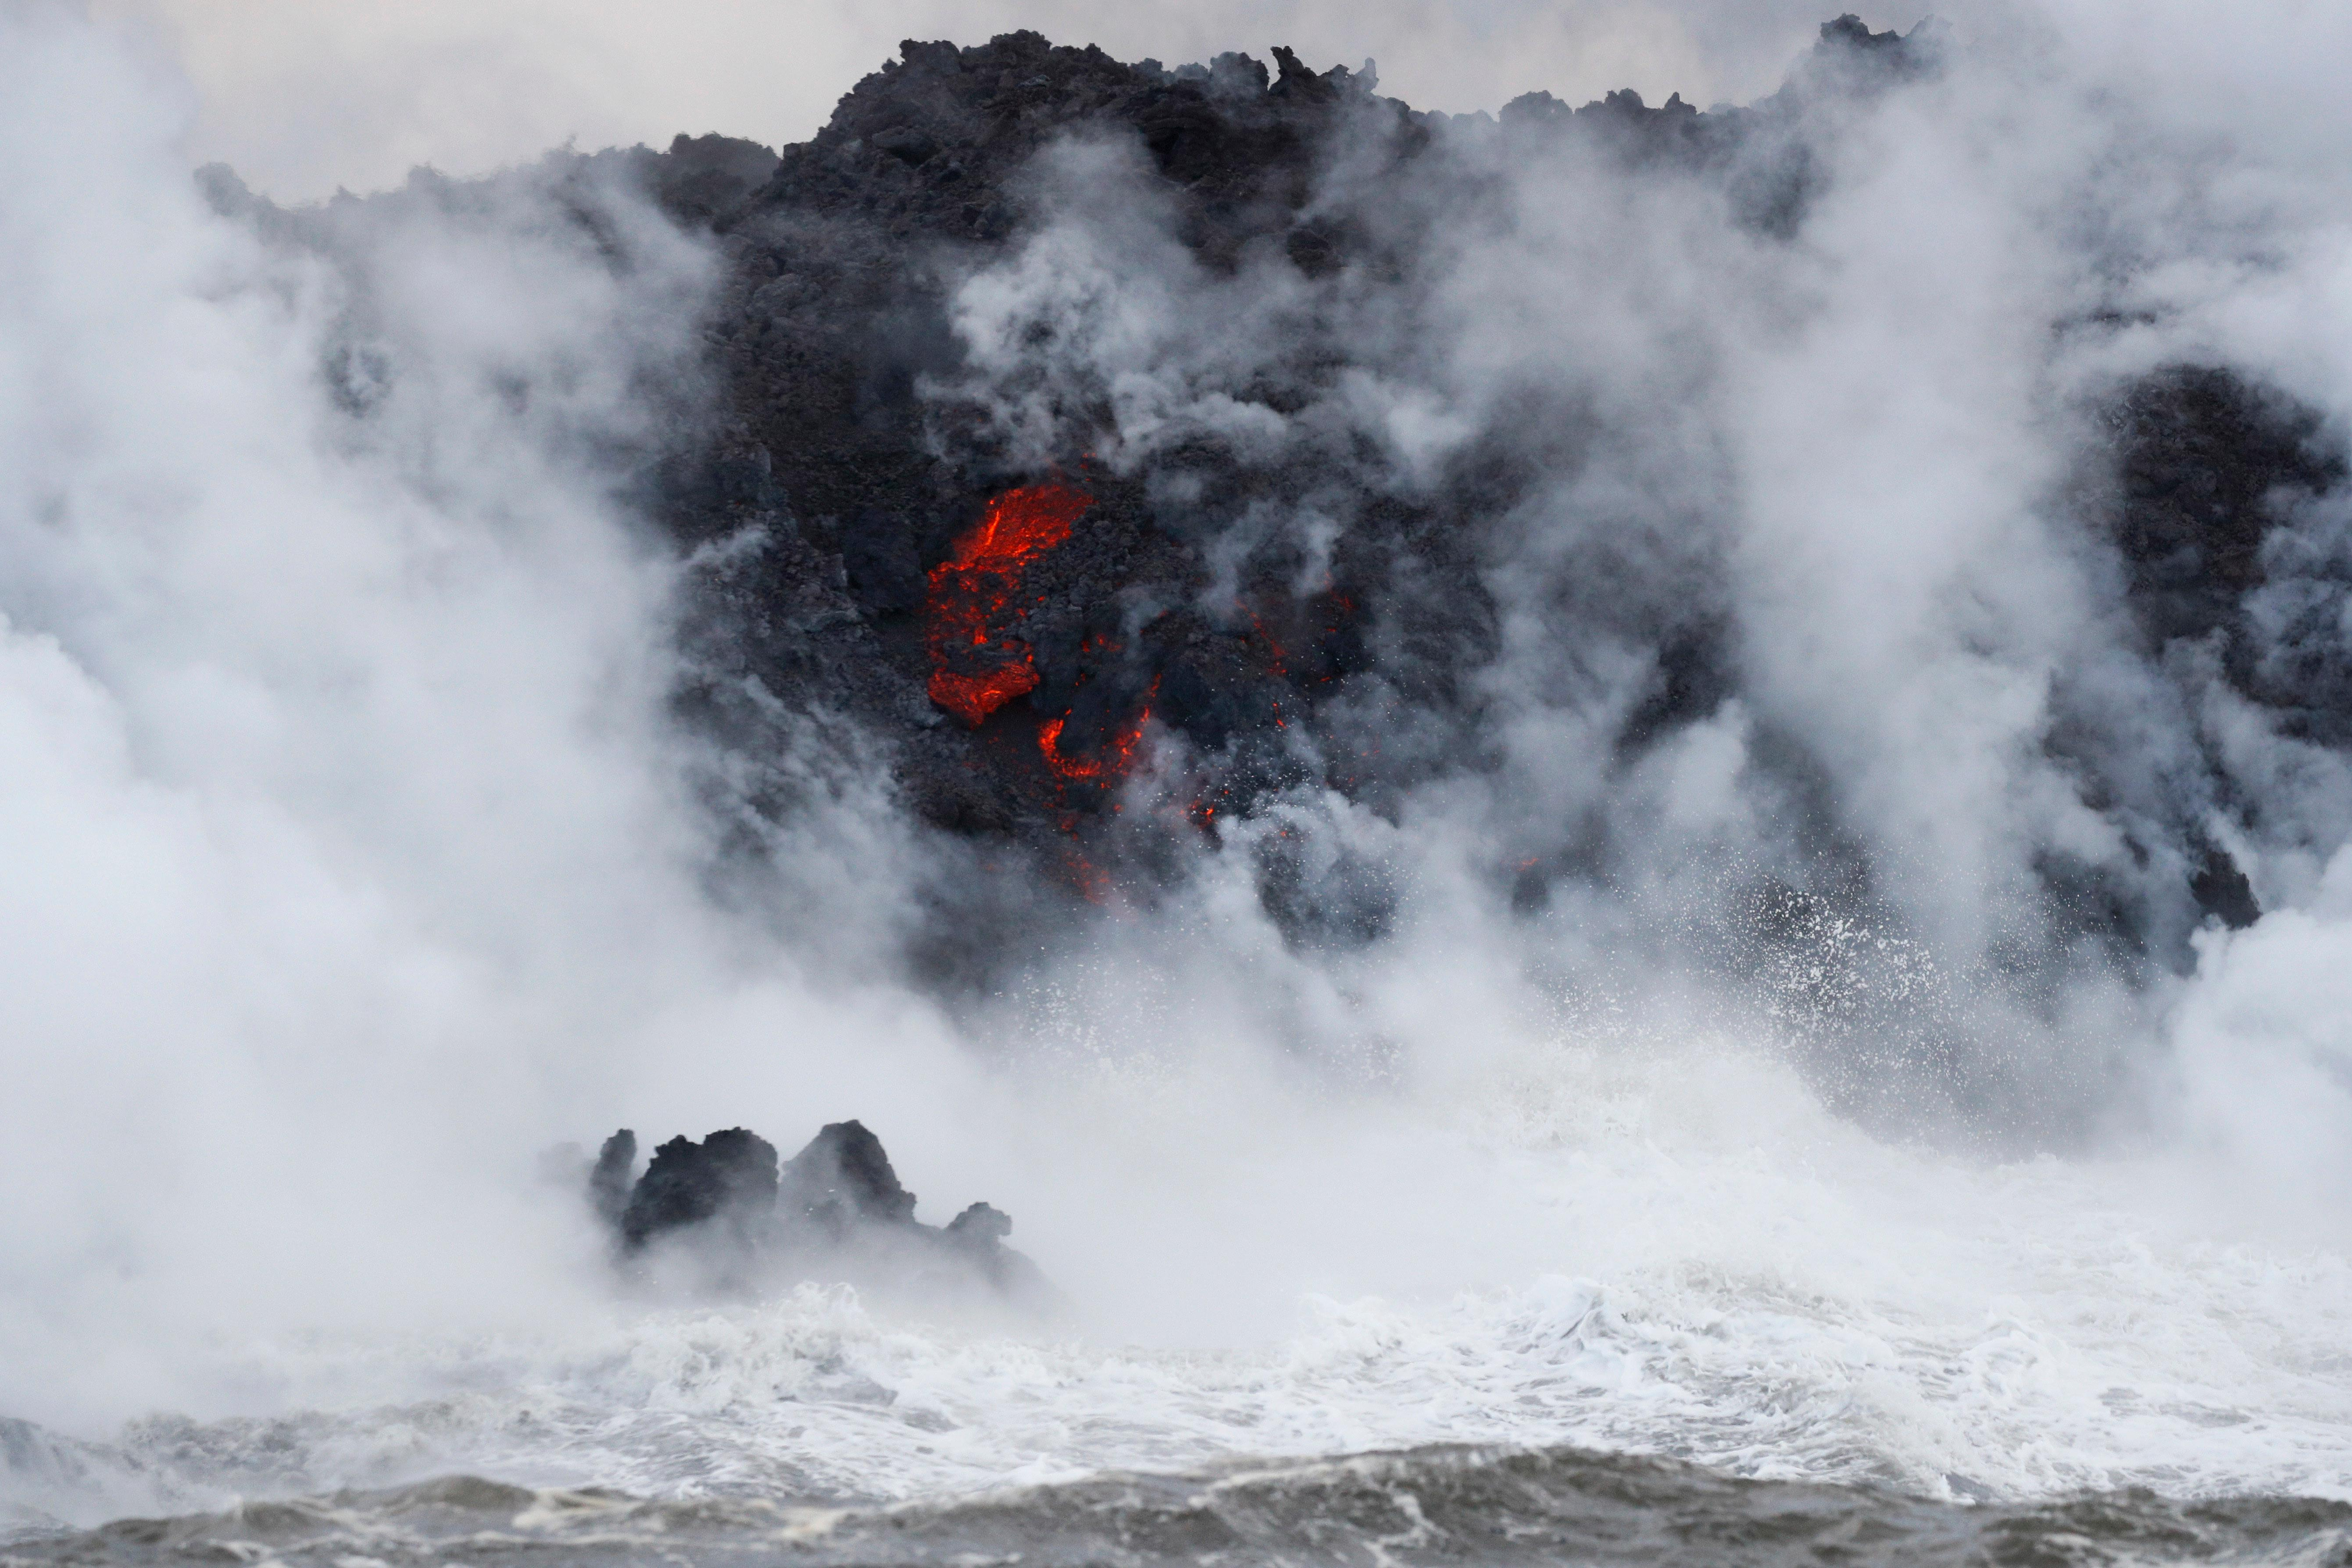 Steam rises as lava flows into the ocean near Pahoa, Hawaii, Sunday, May 20, 2018. Kilauea volcano that is oozing, spewing and exploding on Hawaii's Big Island has gotten more hazardous in recent days, with rivers of molten rock pouring into the ocean Sunday and flying lava causing the first major injury. (AP Photo/Jae C. Hong)